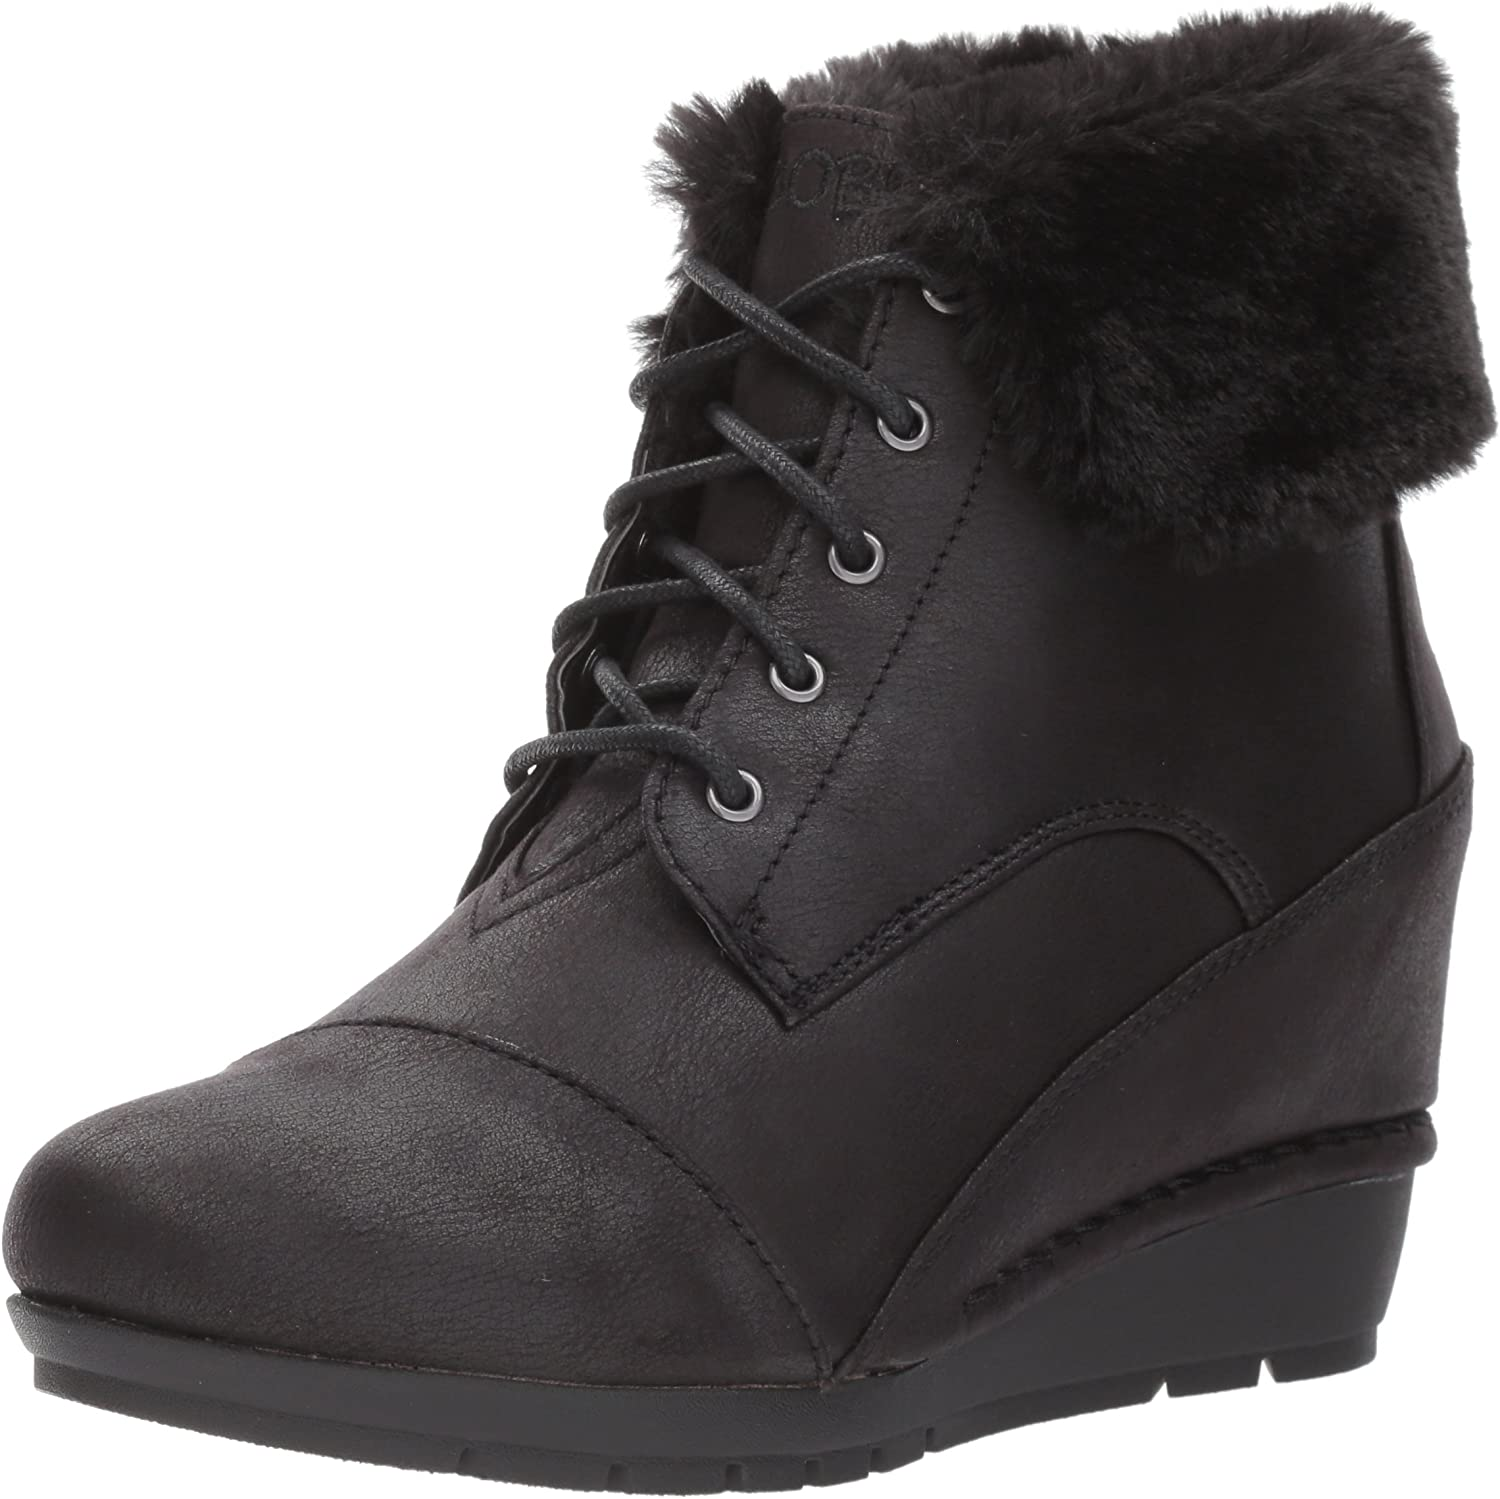 Skechers Womens High Peaks - Flurry Dust Ankle Boot